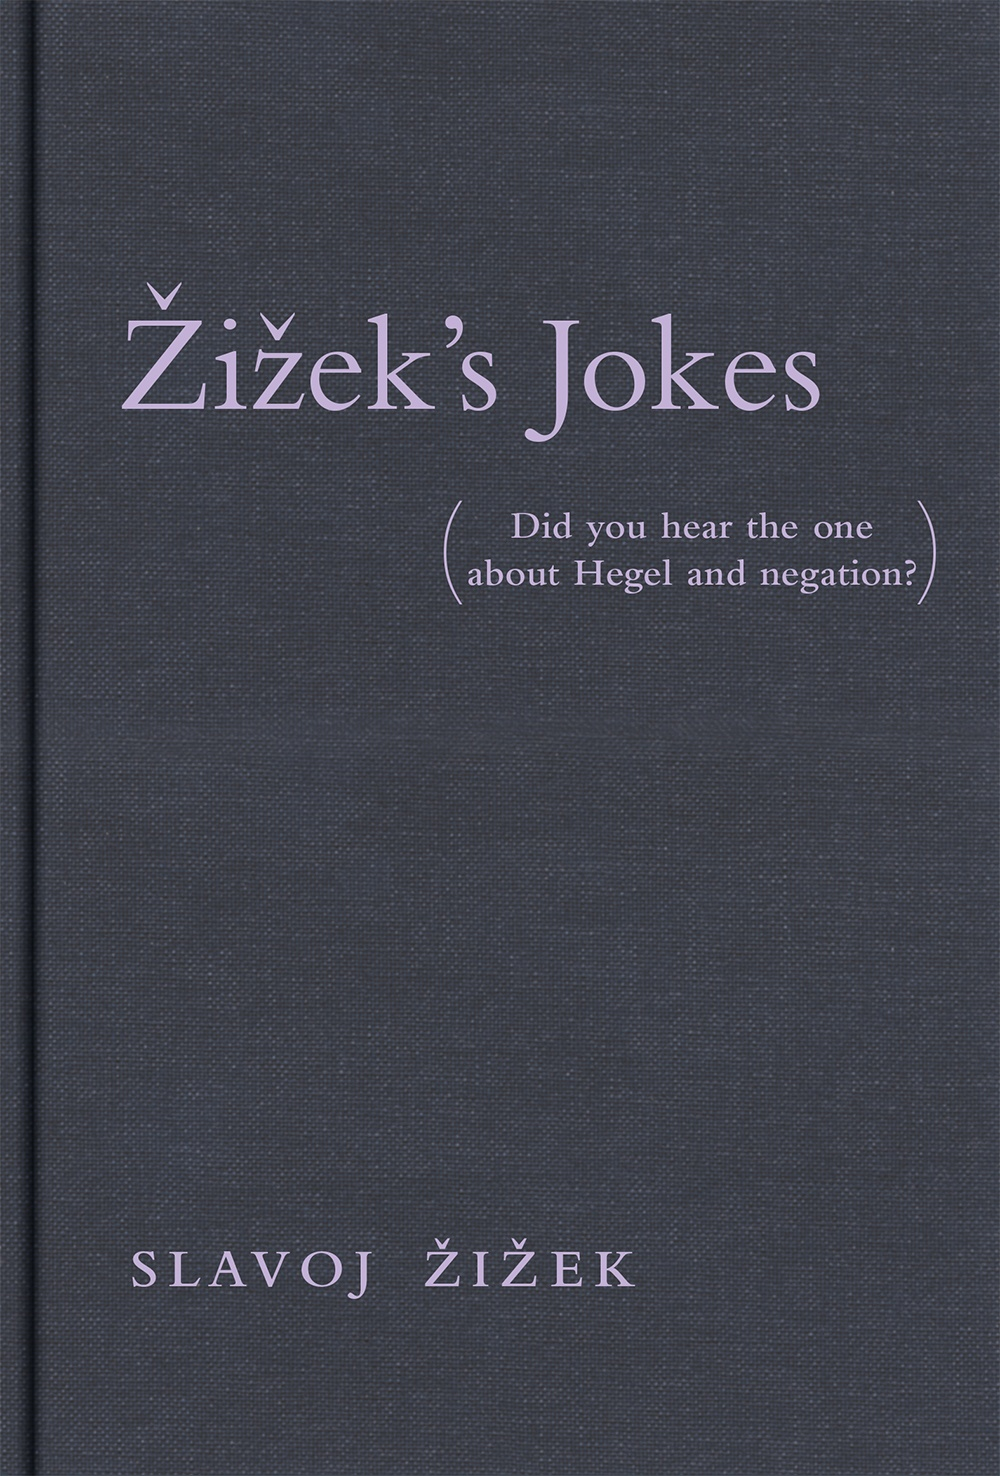 Žižek's Jokes(Did you hear the one about Hegel and negation?)